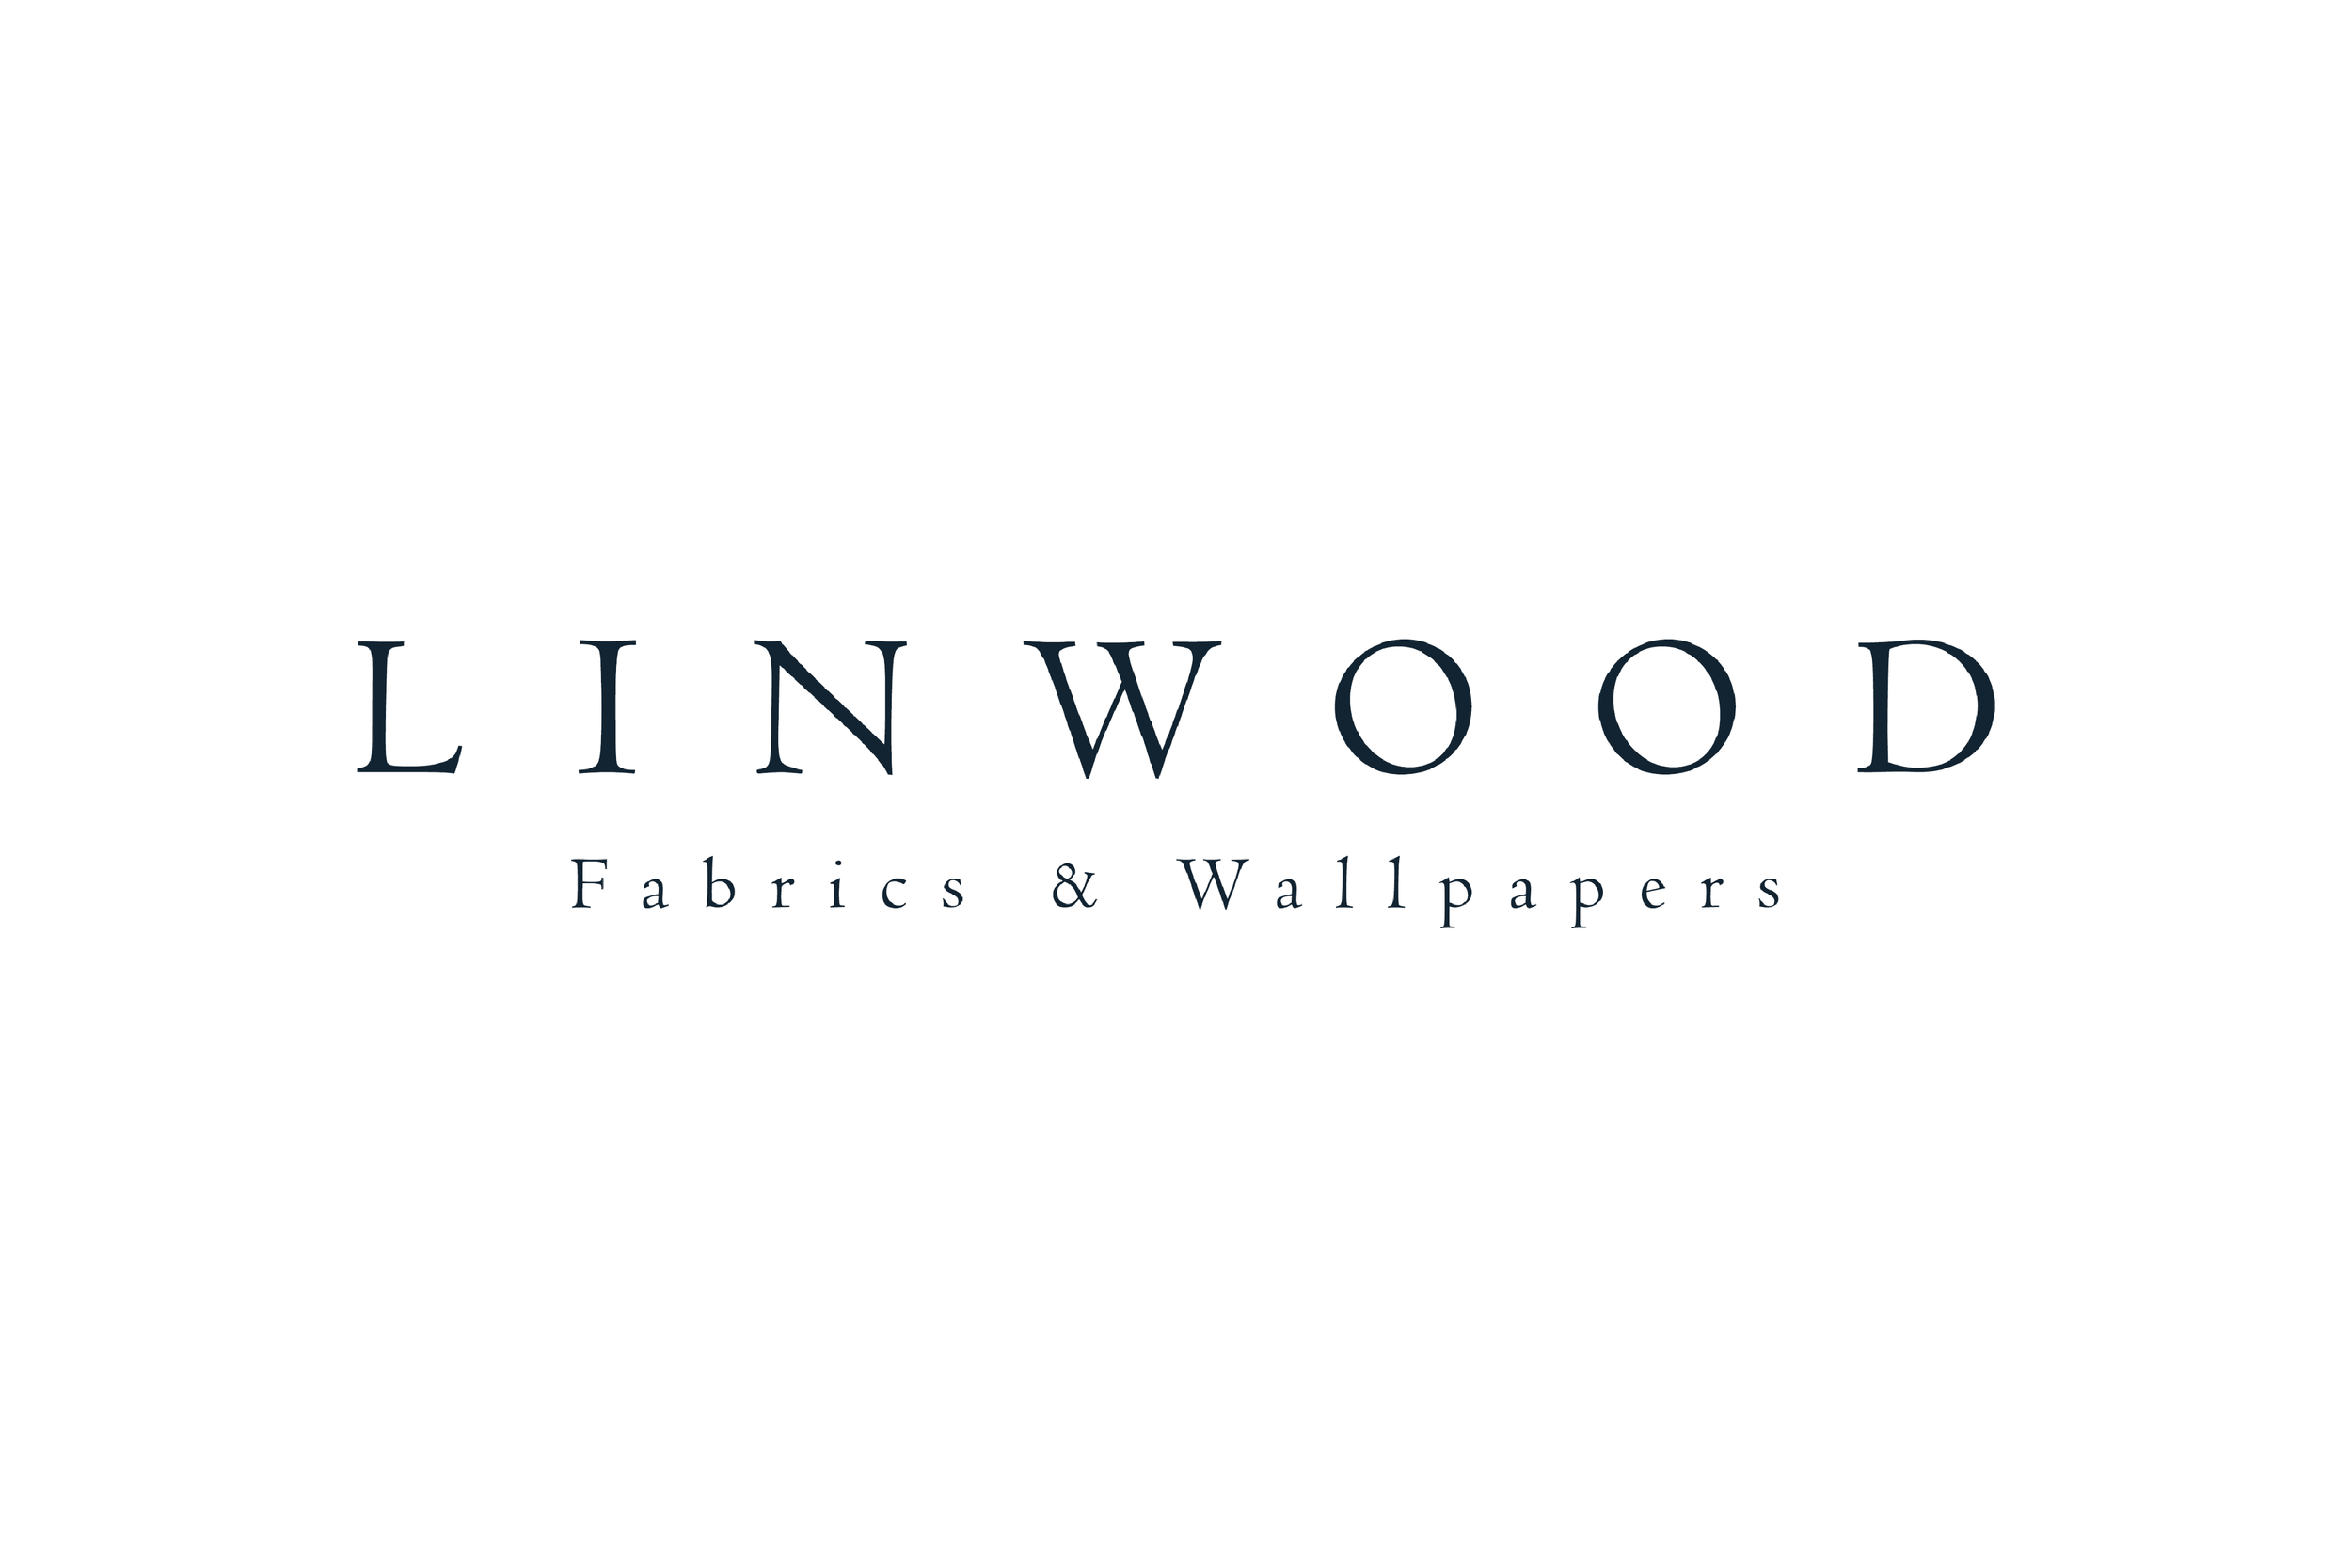 Linwood-01.png